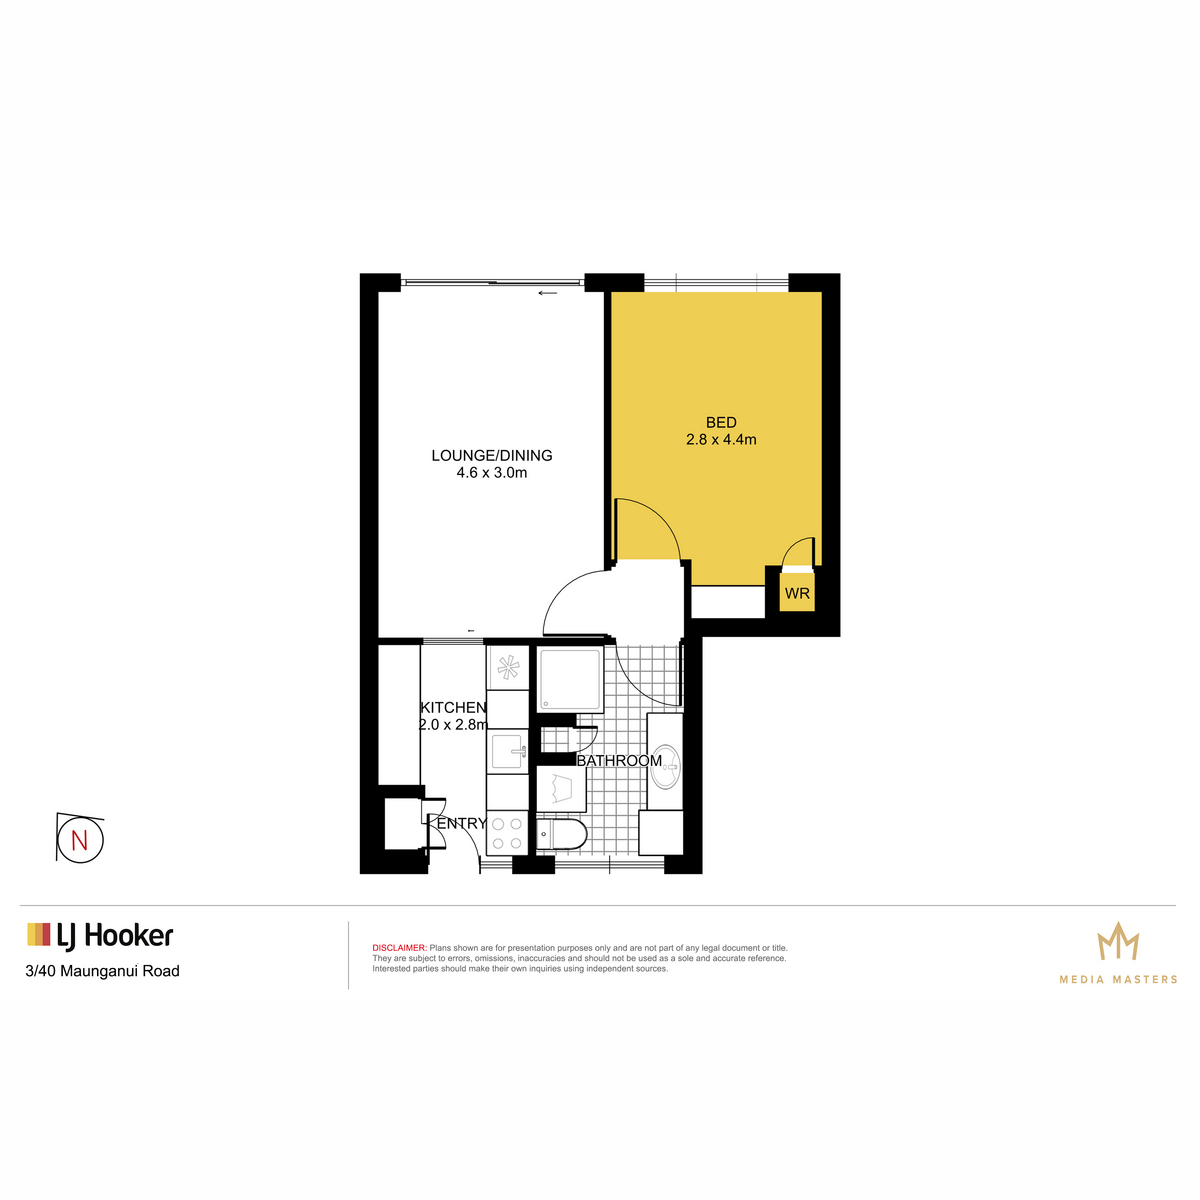 40C Maunganui Road Mount Maunganuiproperty floorplan image